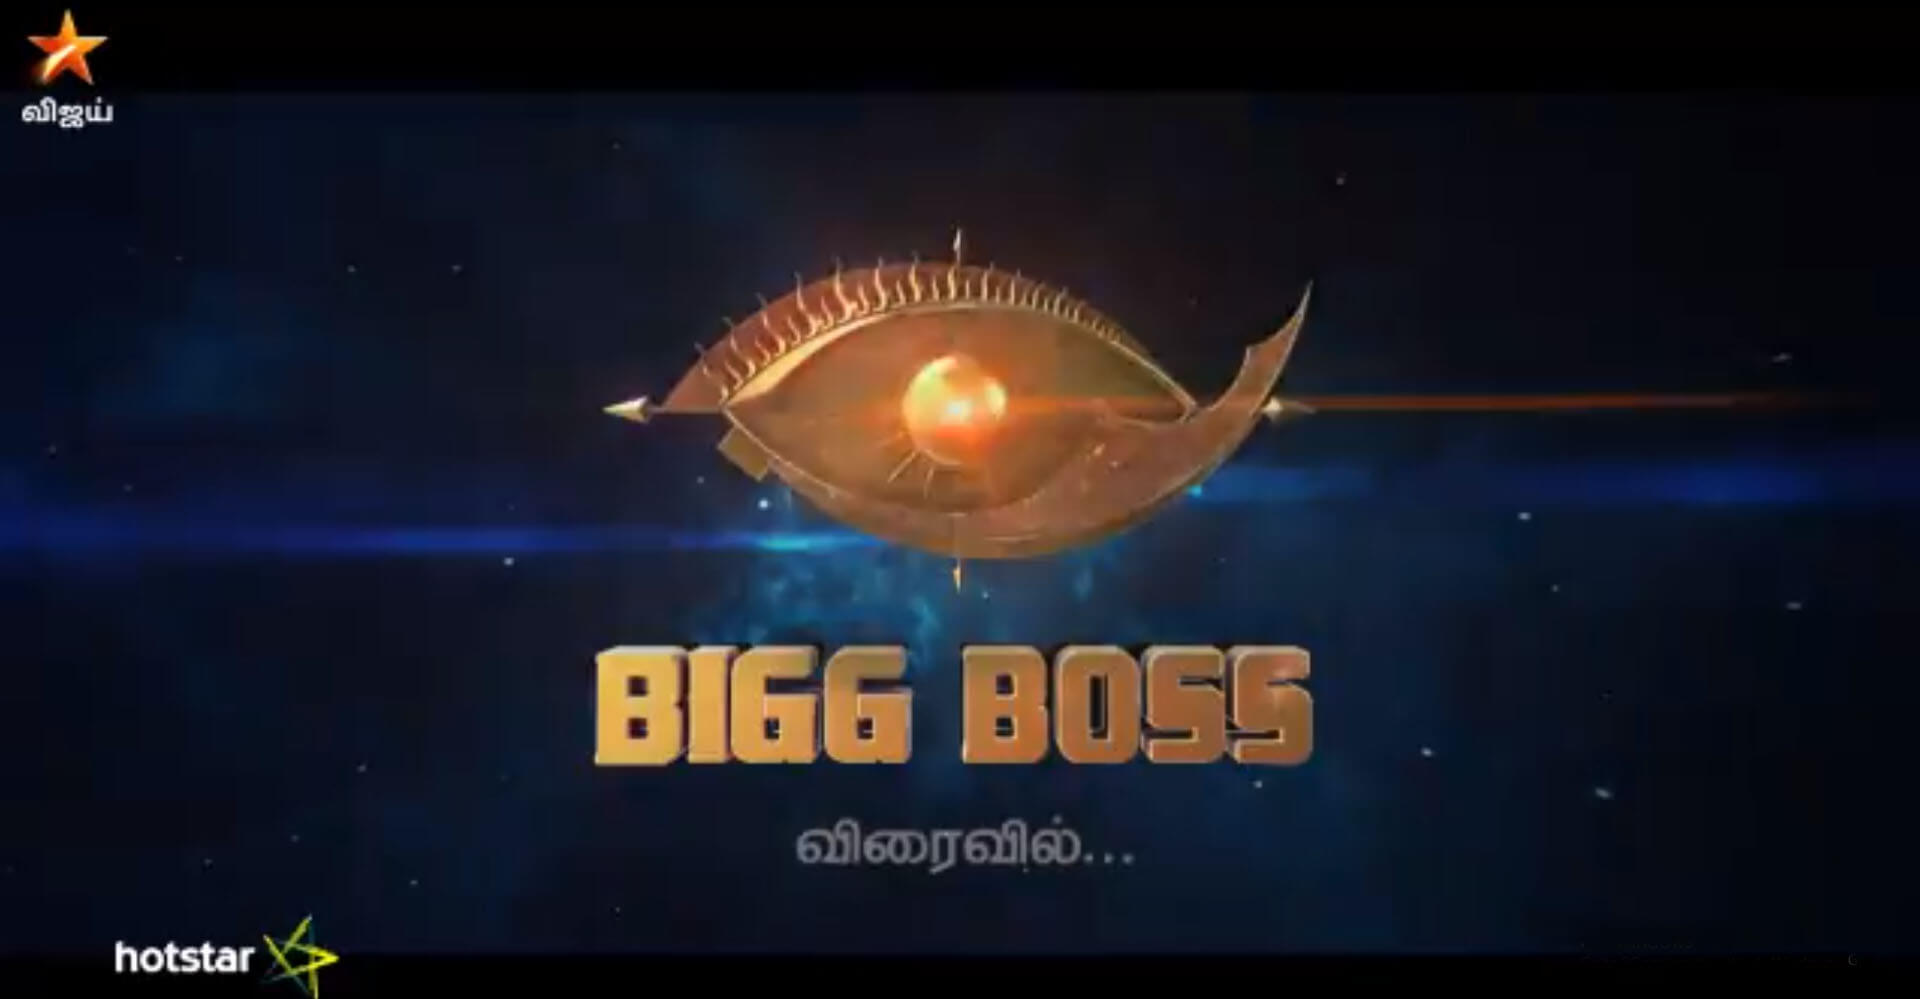 Bigg Boss Tamil 3 Teaser Has Been Released By Star Vijay